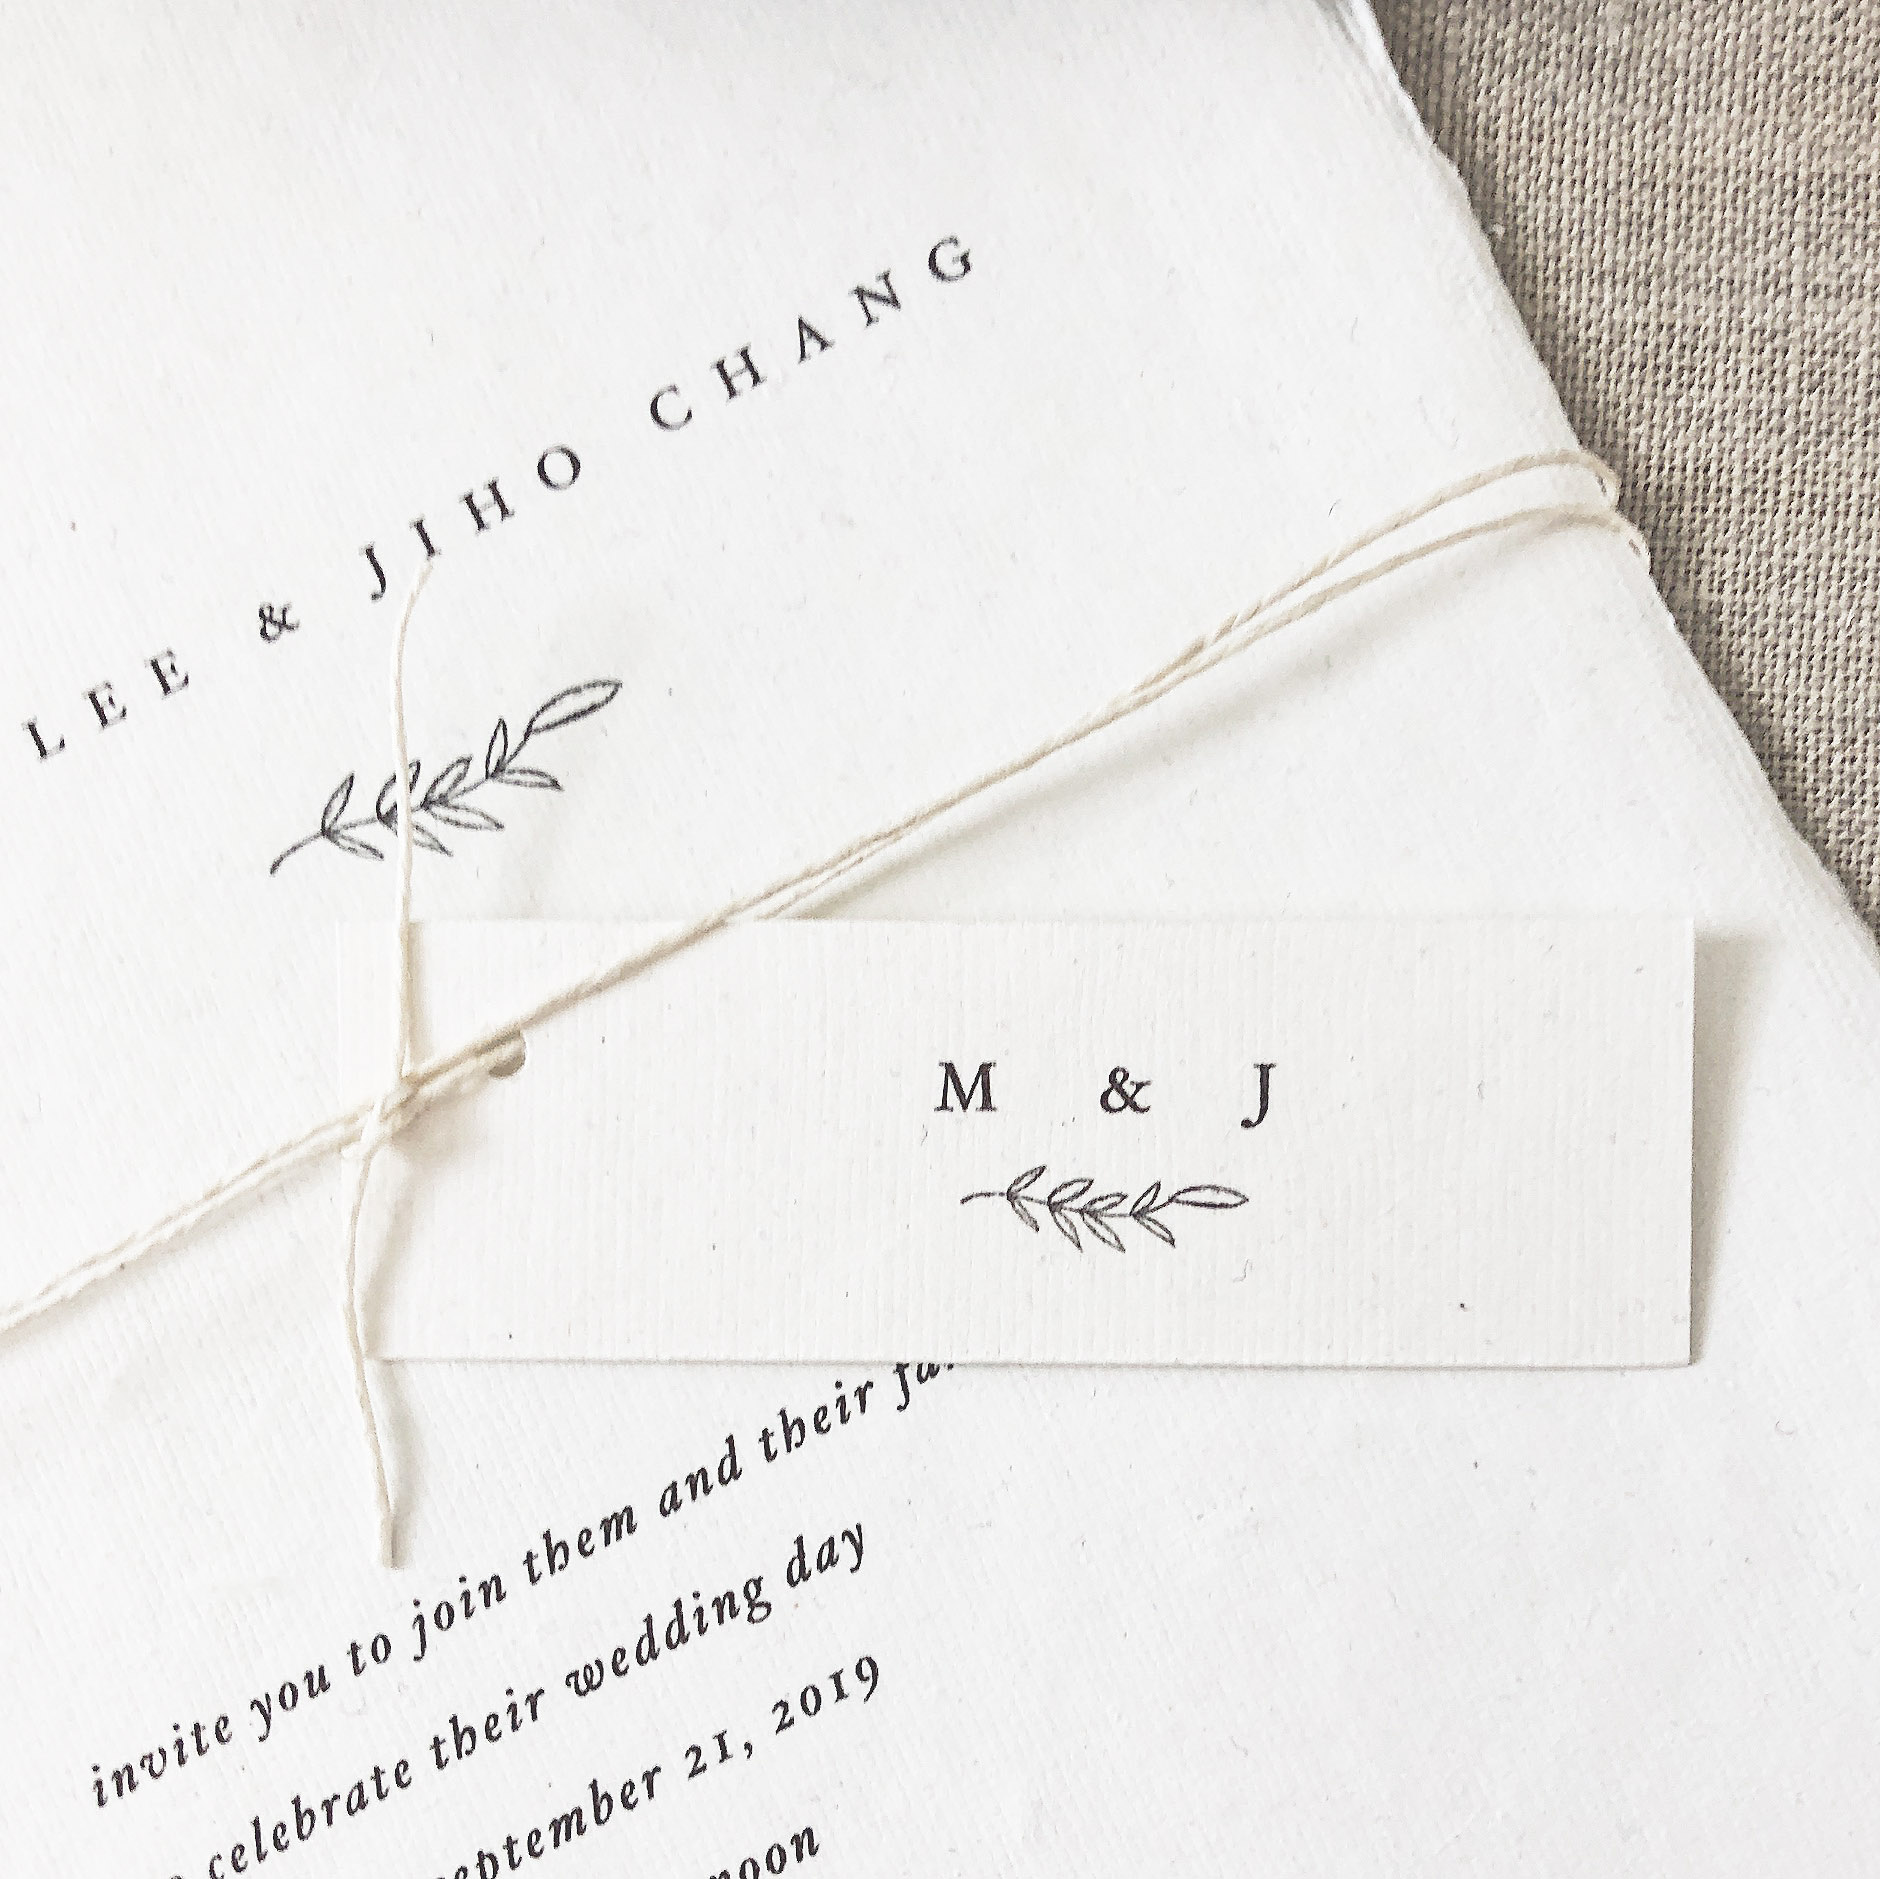 hang tags   Our hang tags match your chosen design, with your initials and graphic, or your wedding date.